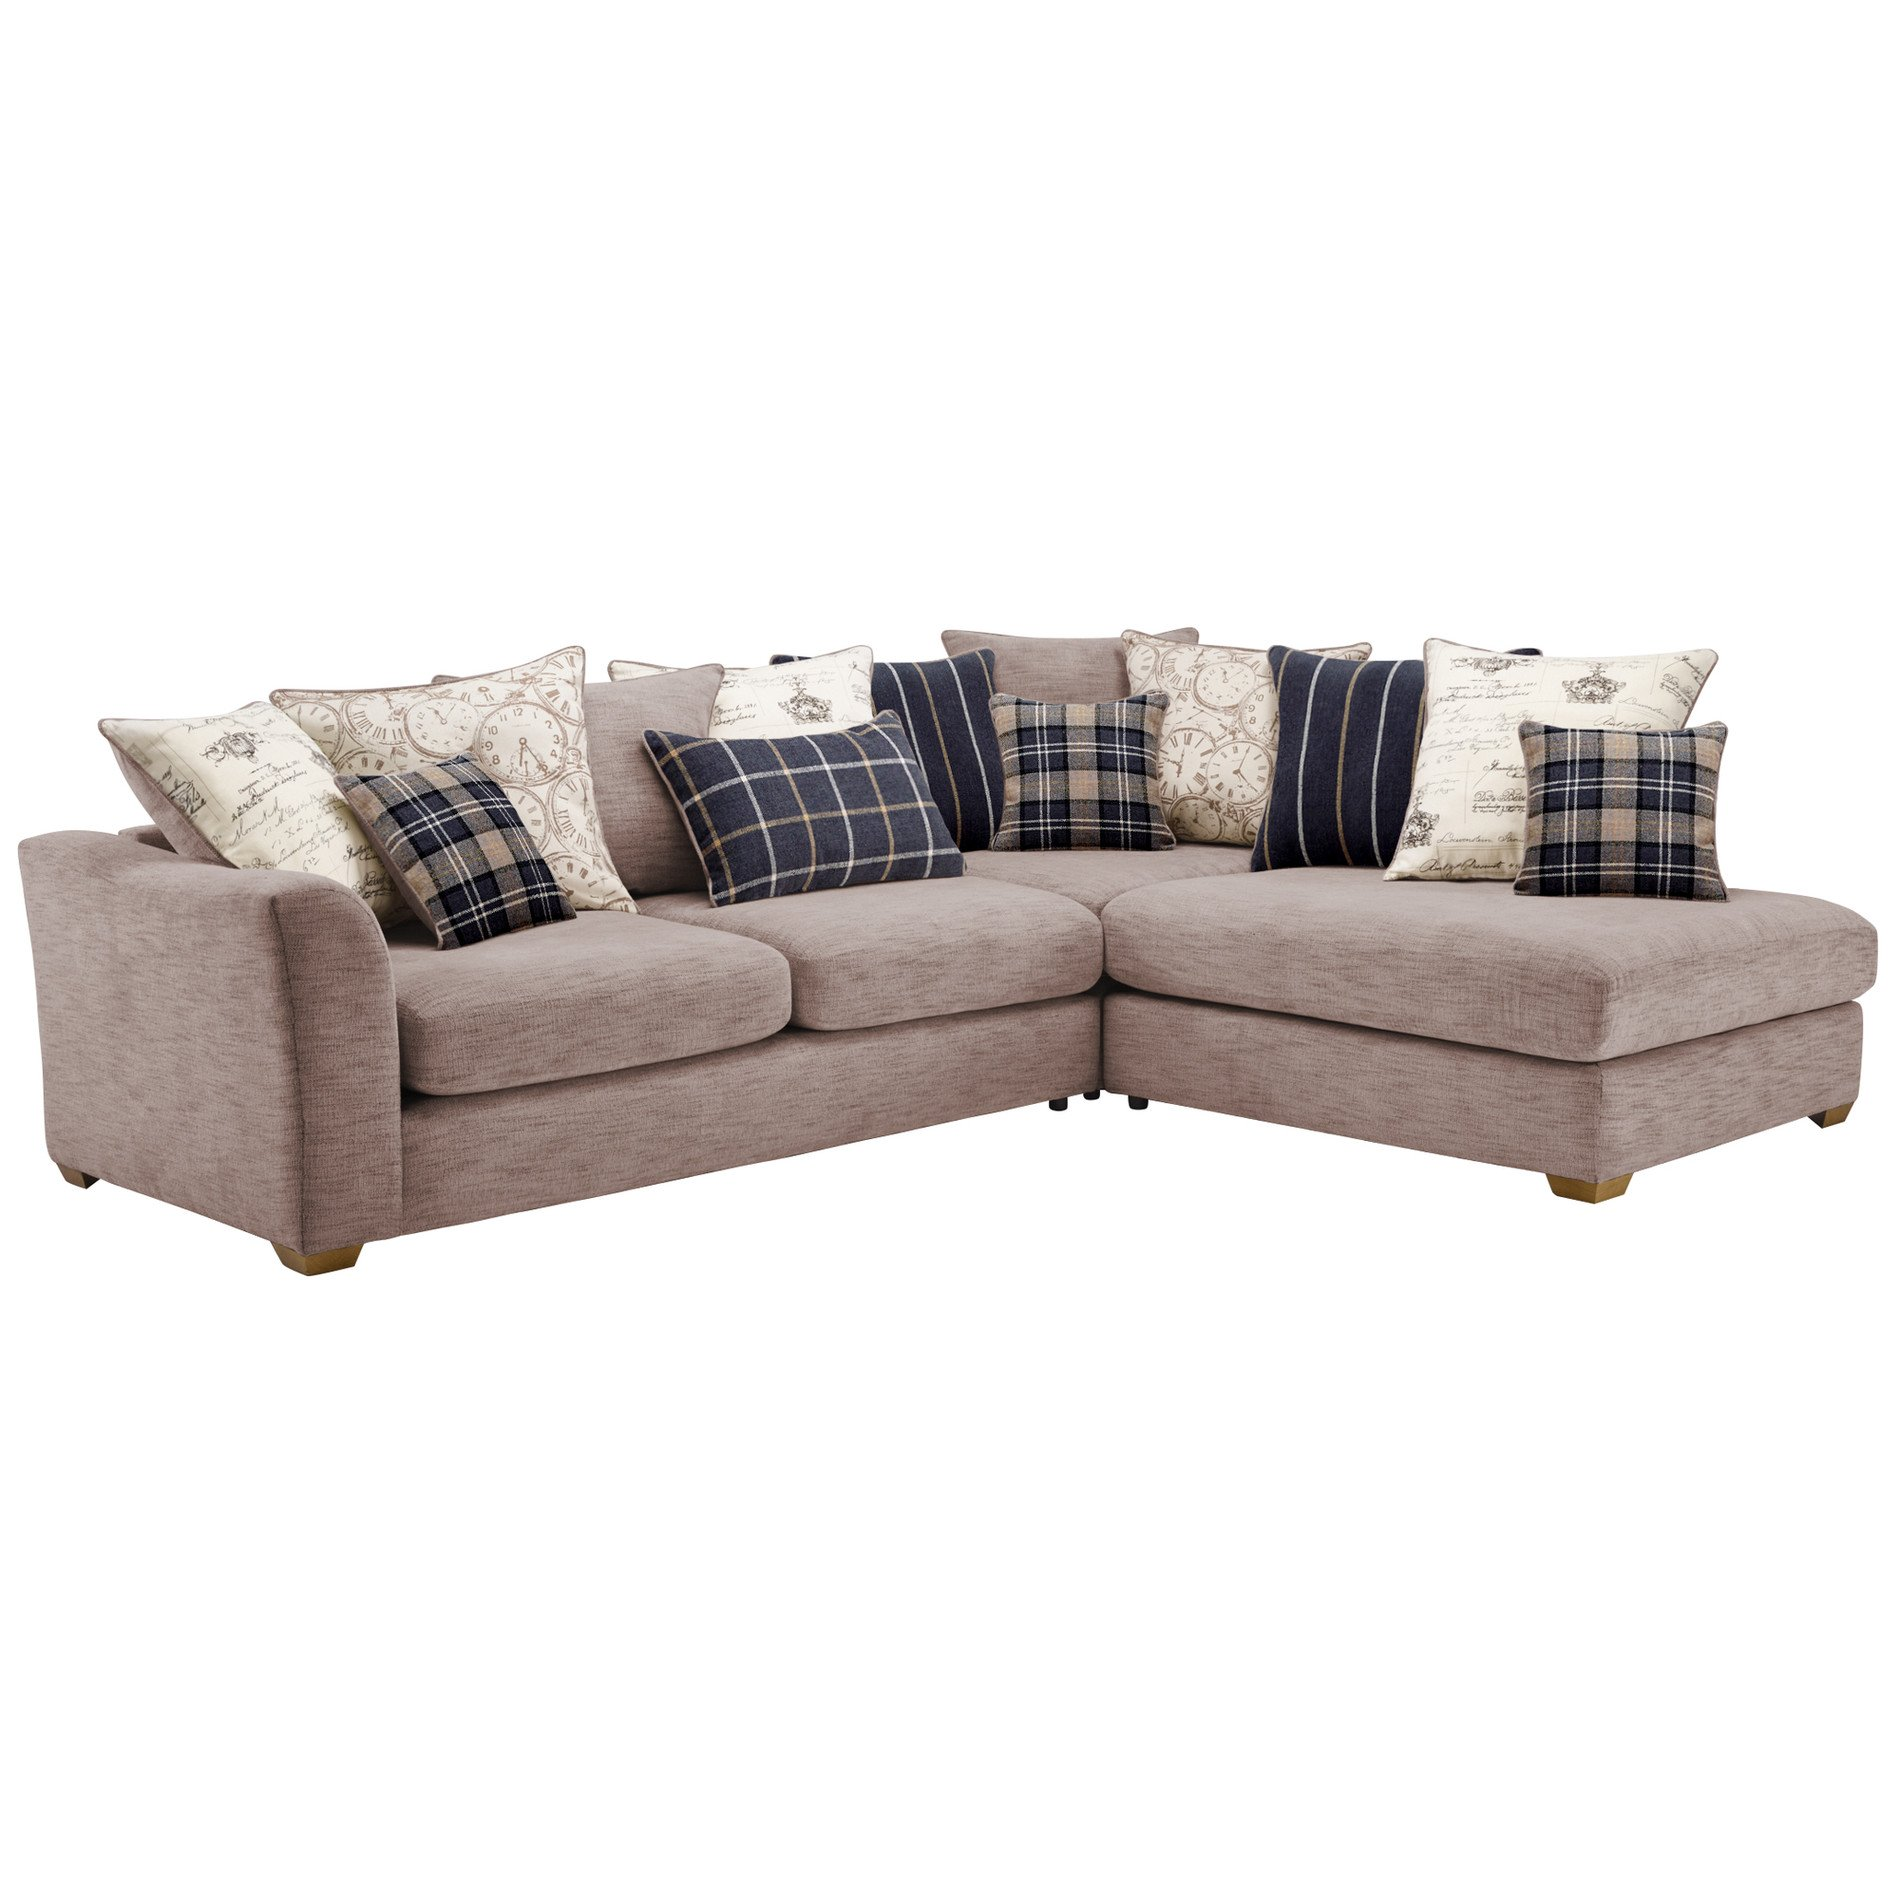 Florence Left Hand Corner Sofa with Pillow Back Silver